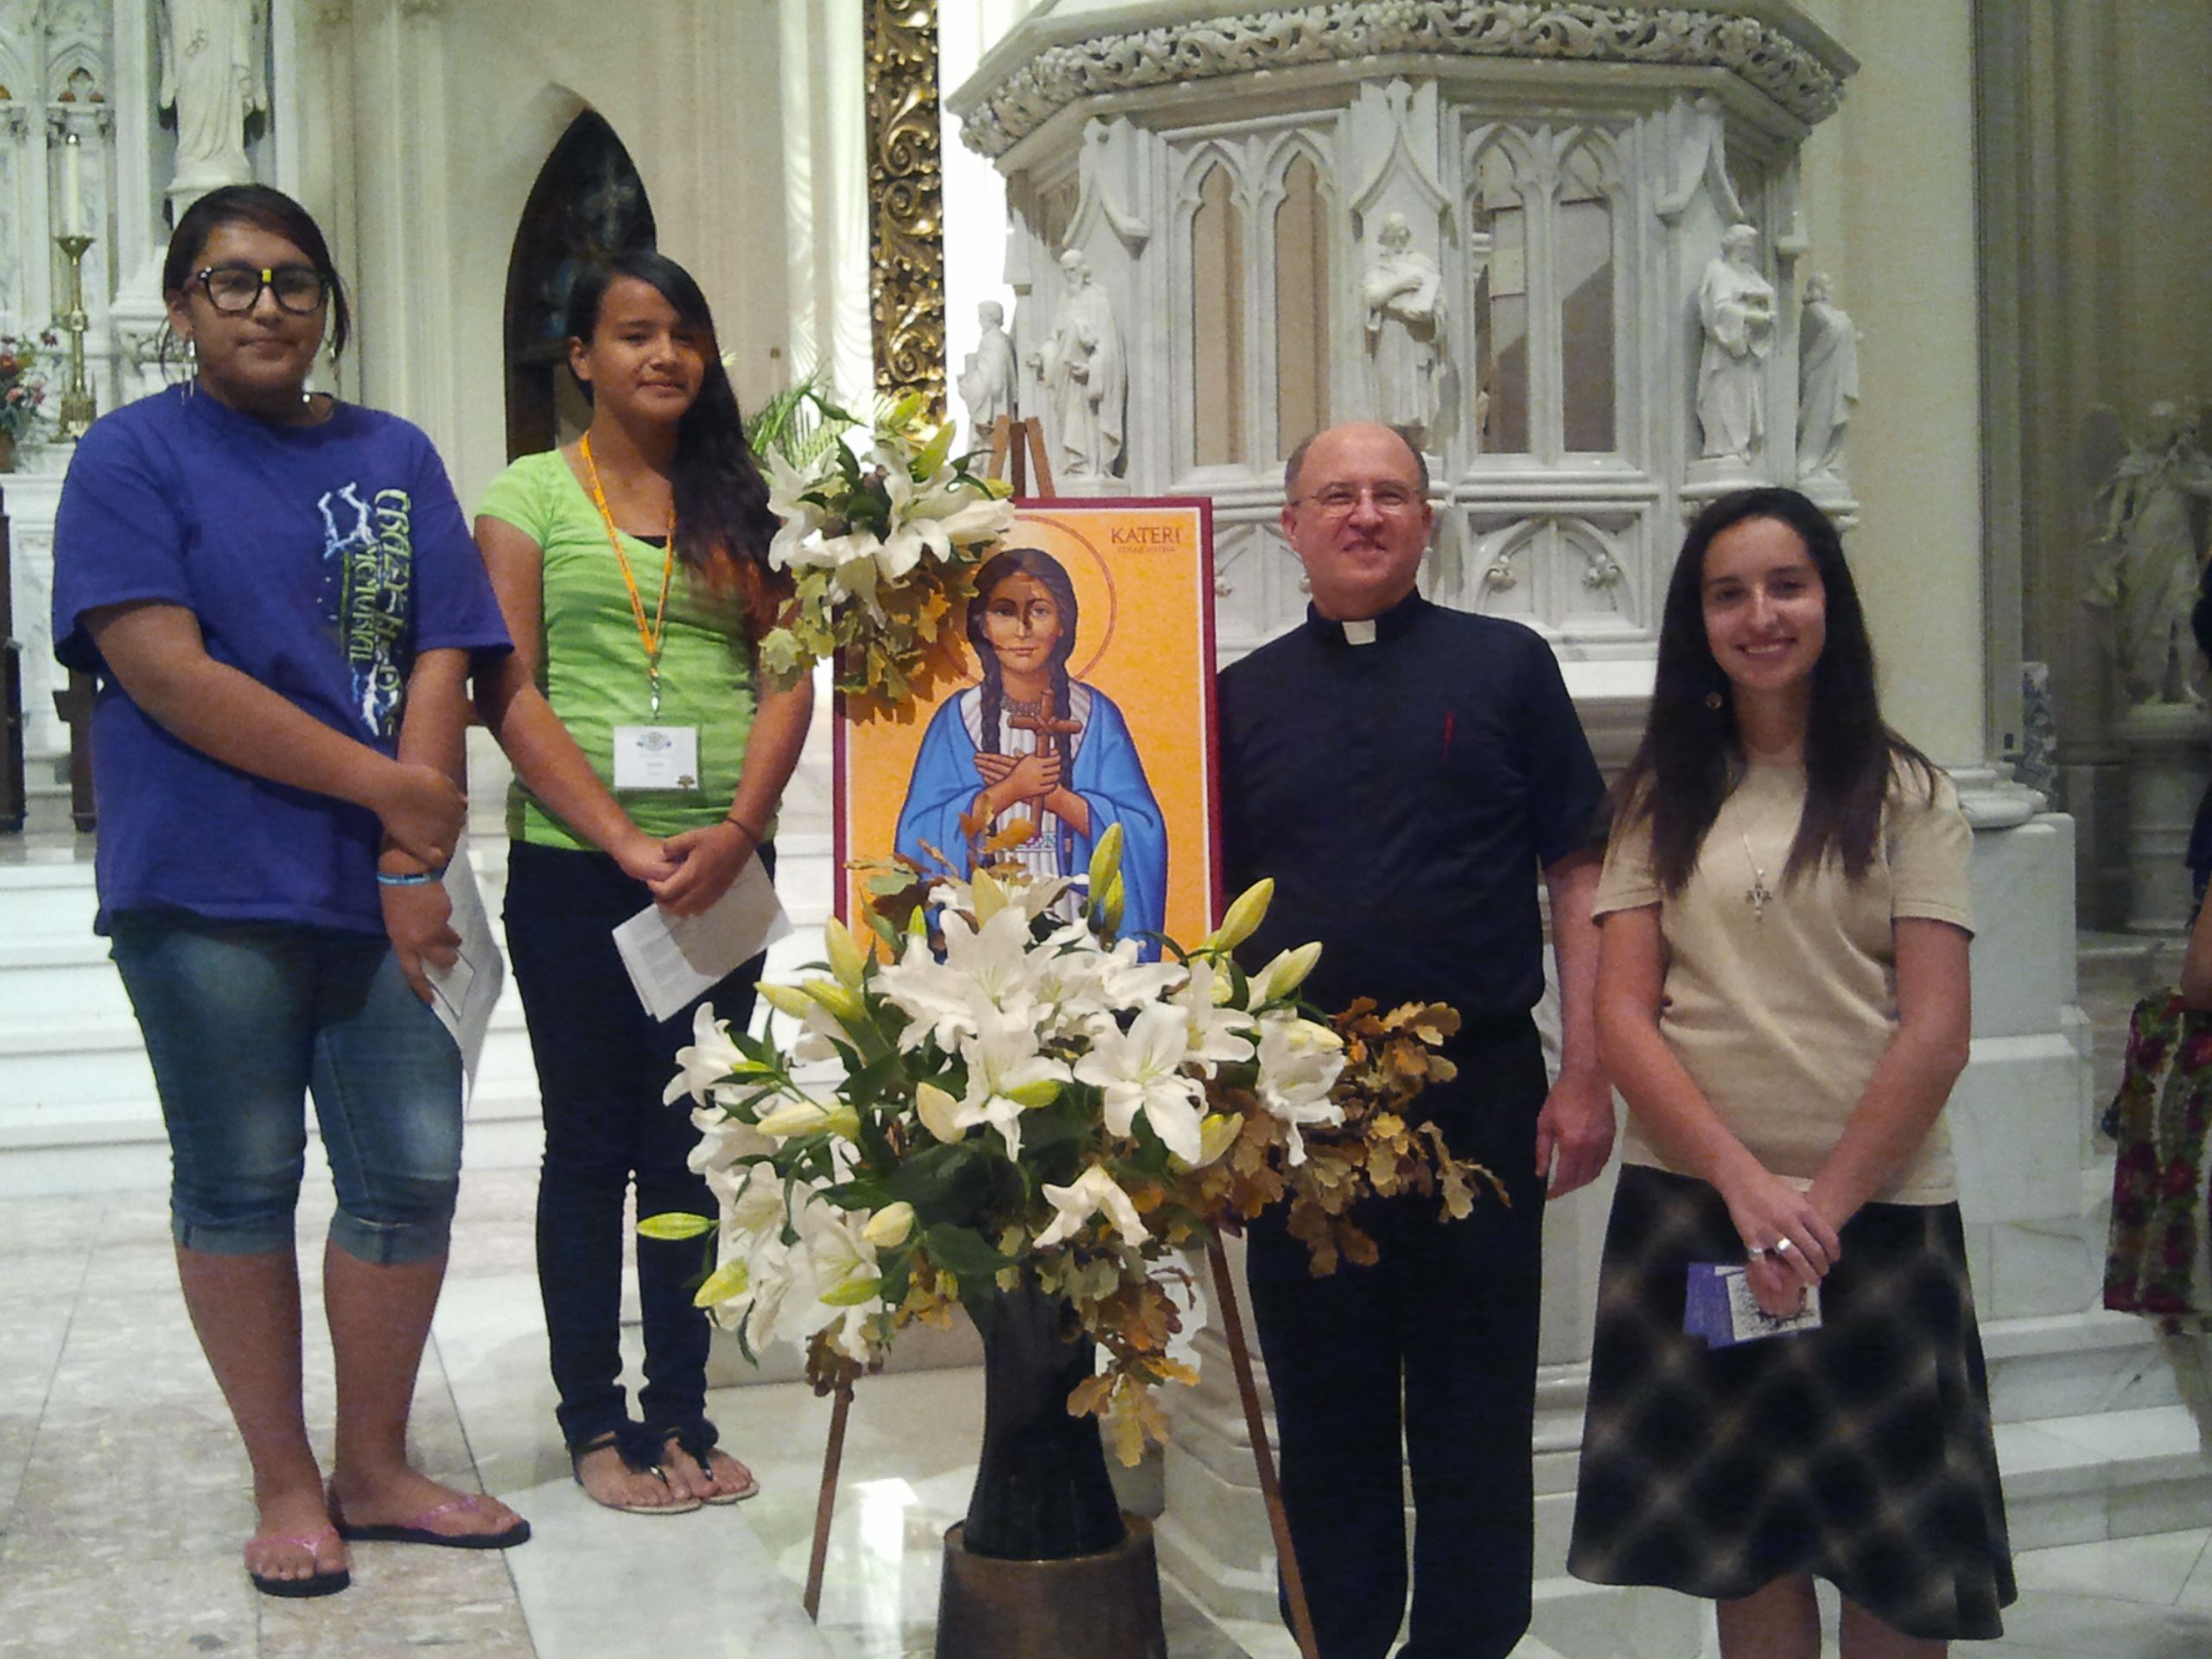 All of us with the beautiful icon honoring Saint Kateri Tekakwitha.